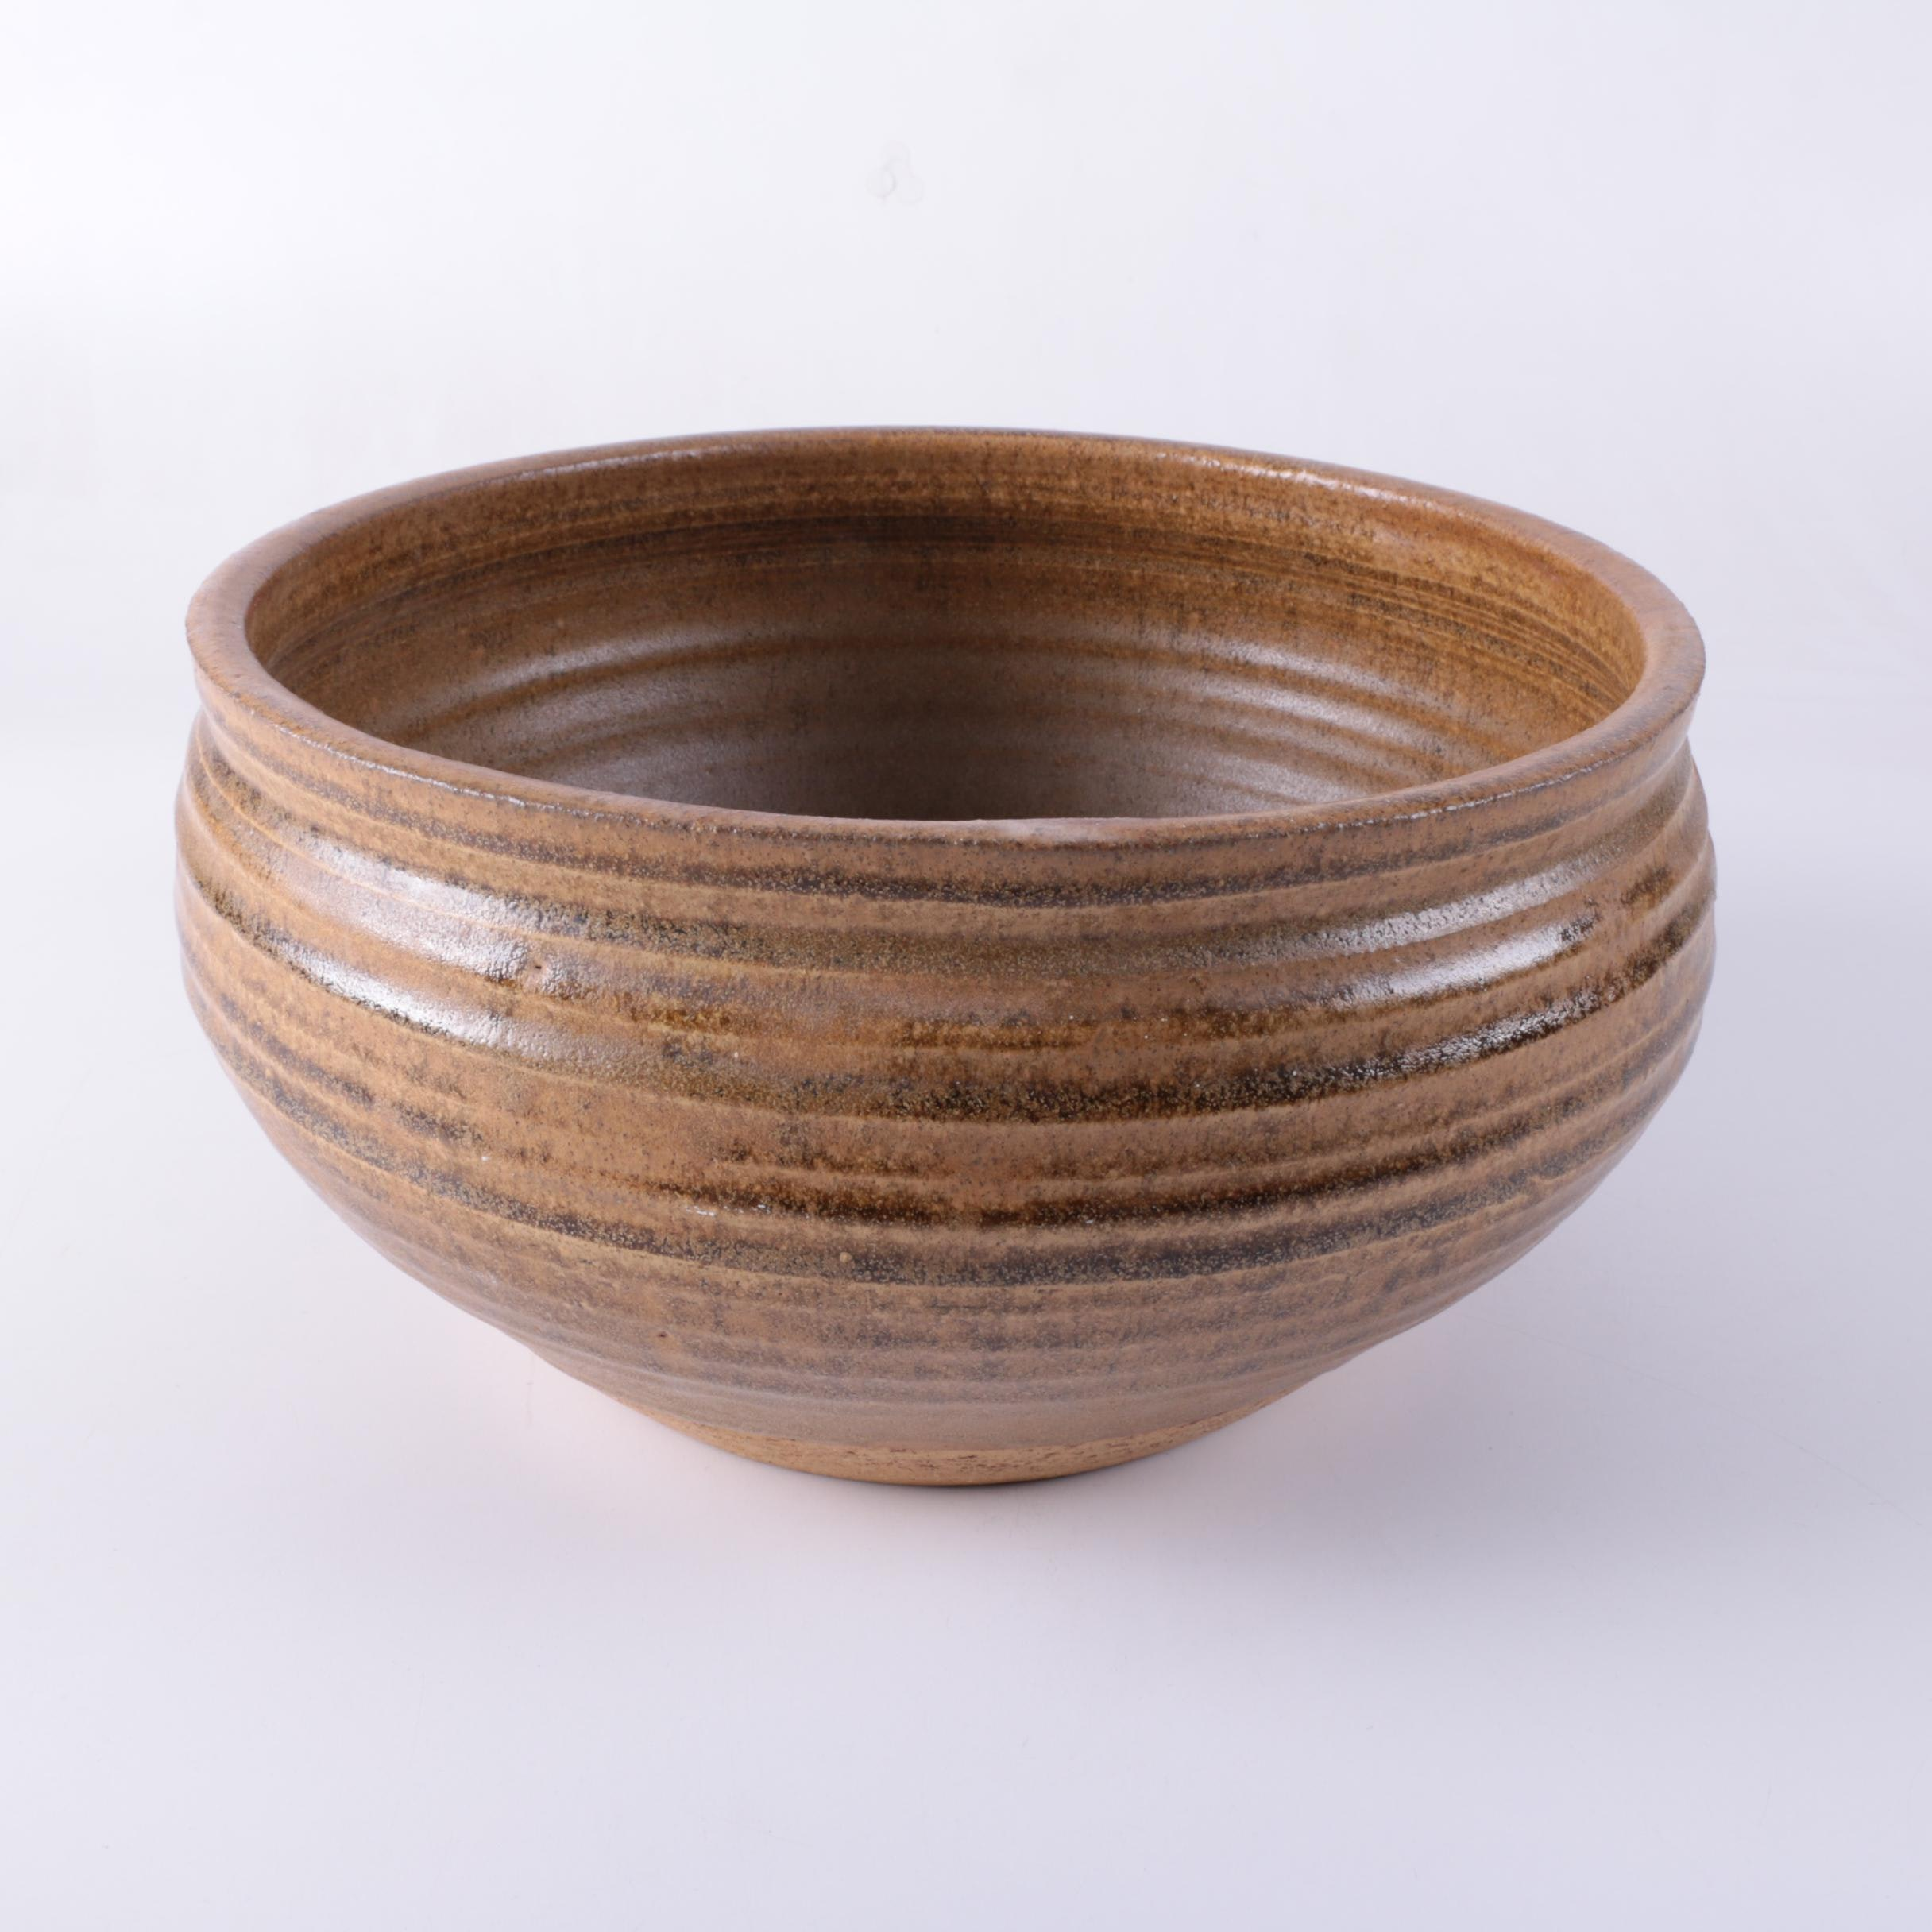 Contemporary Glazed Stoneware Pottery Bowl